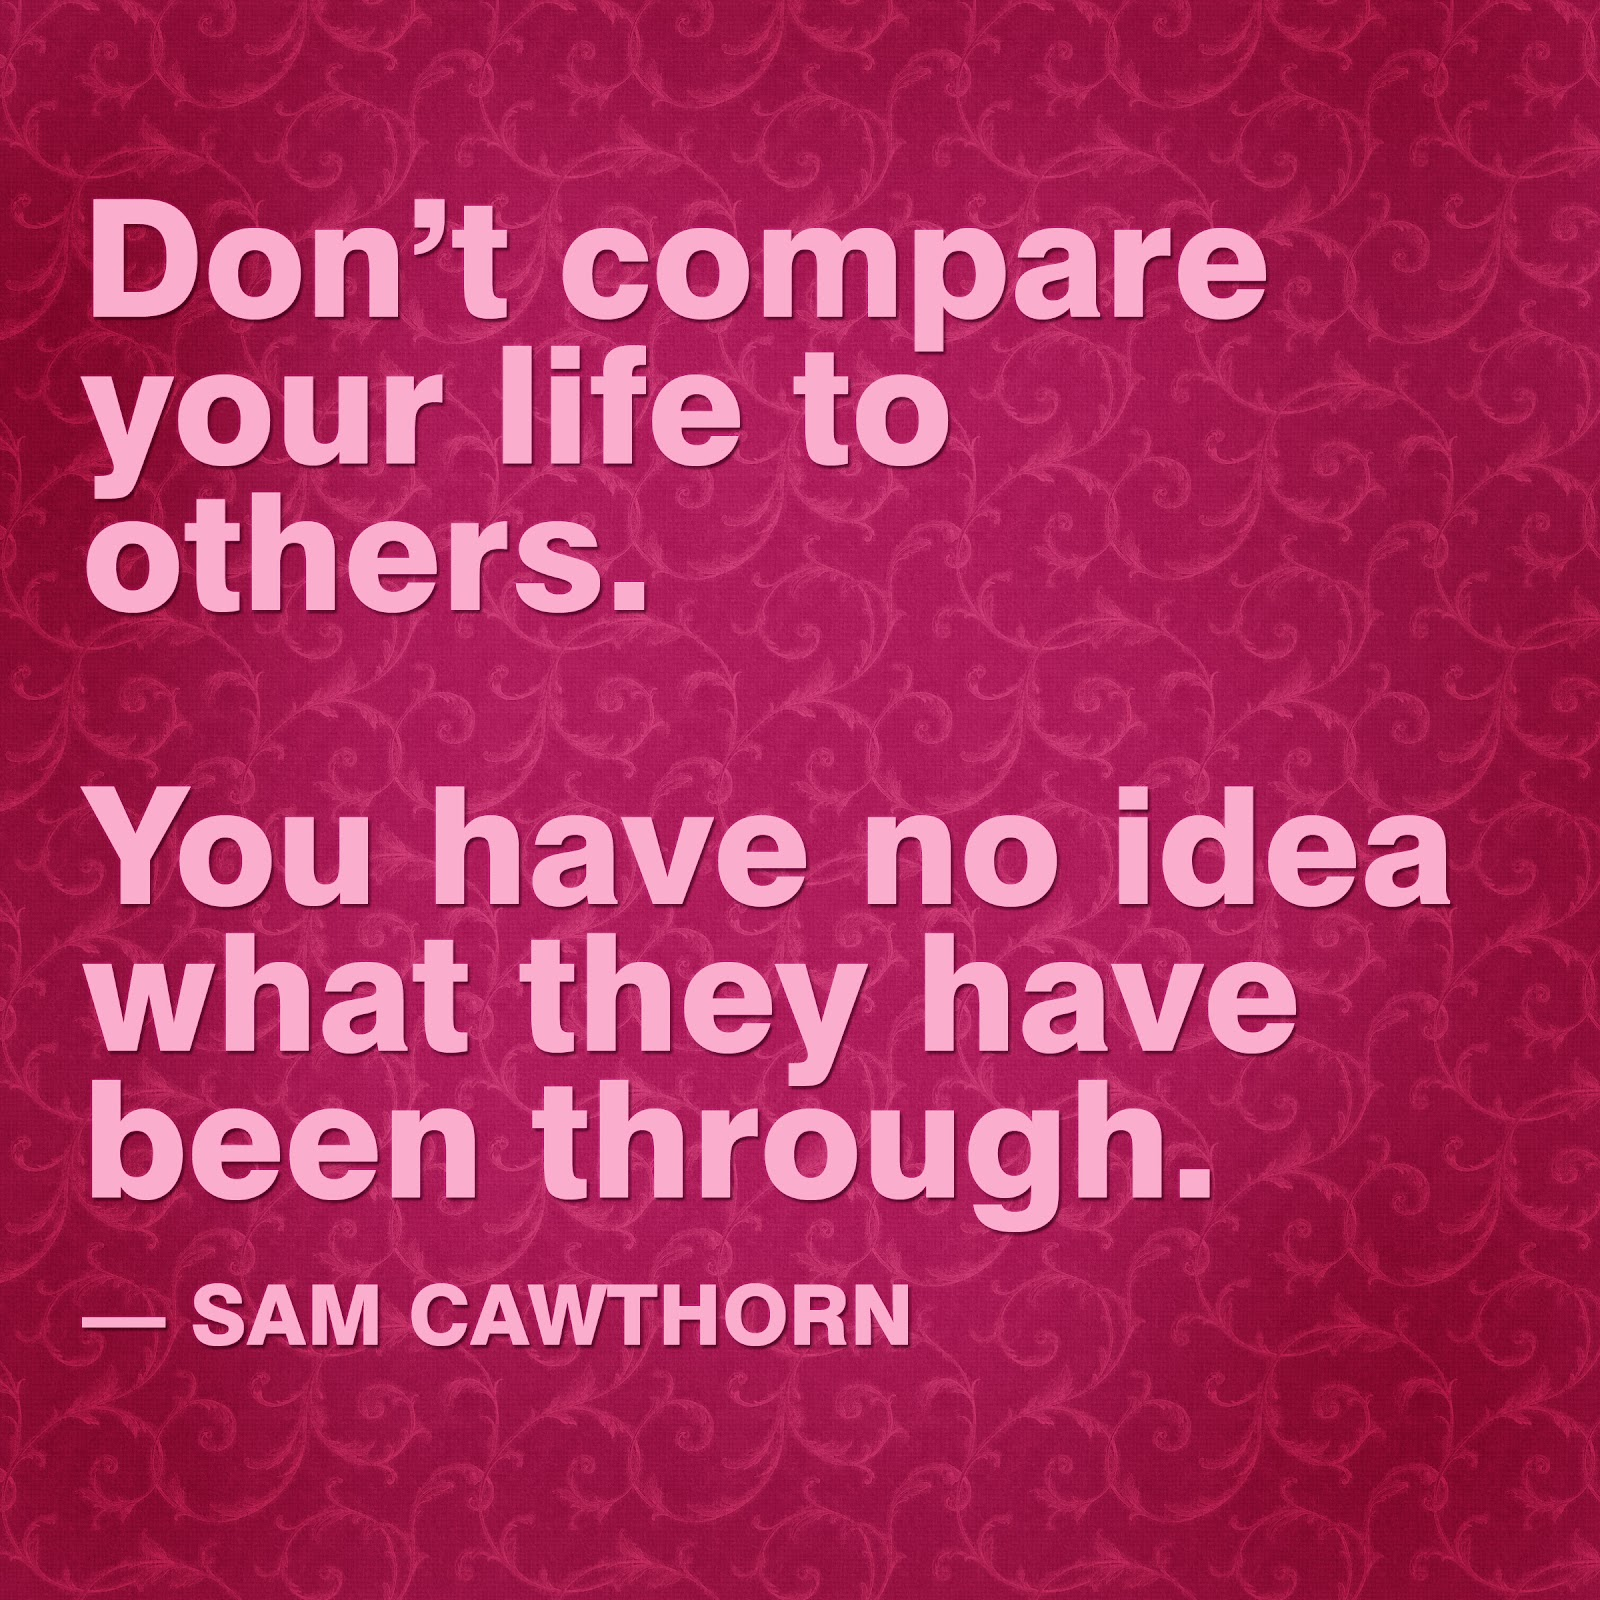 Quotes About Your Life Happy To Inspire Quote Of The Day Don't Compare Your Life To Others